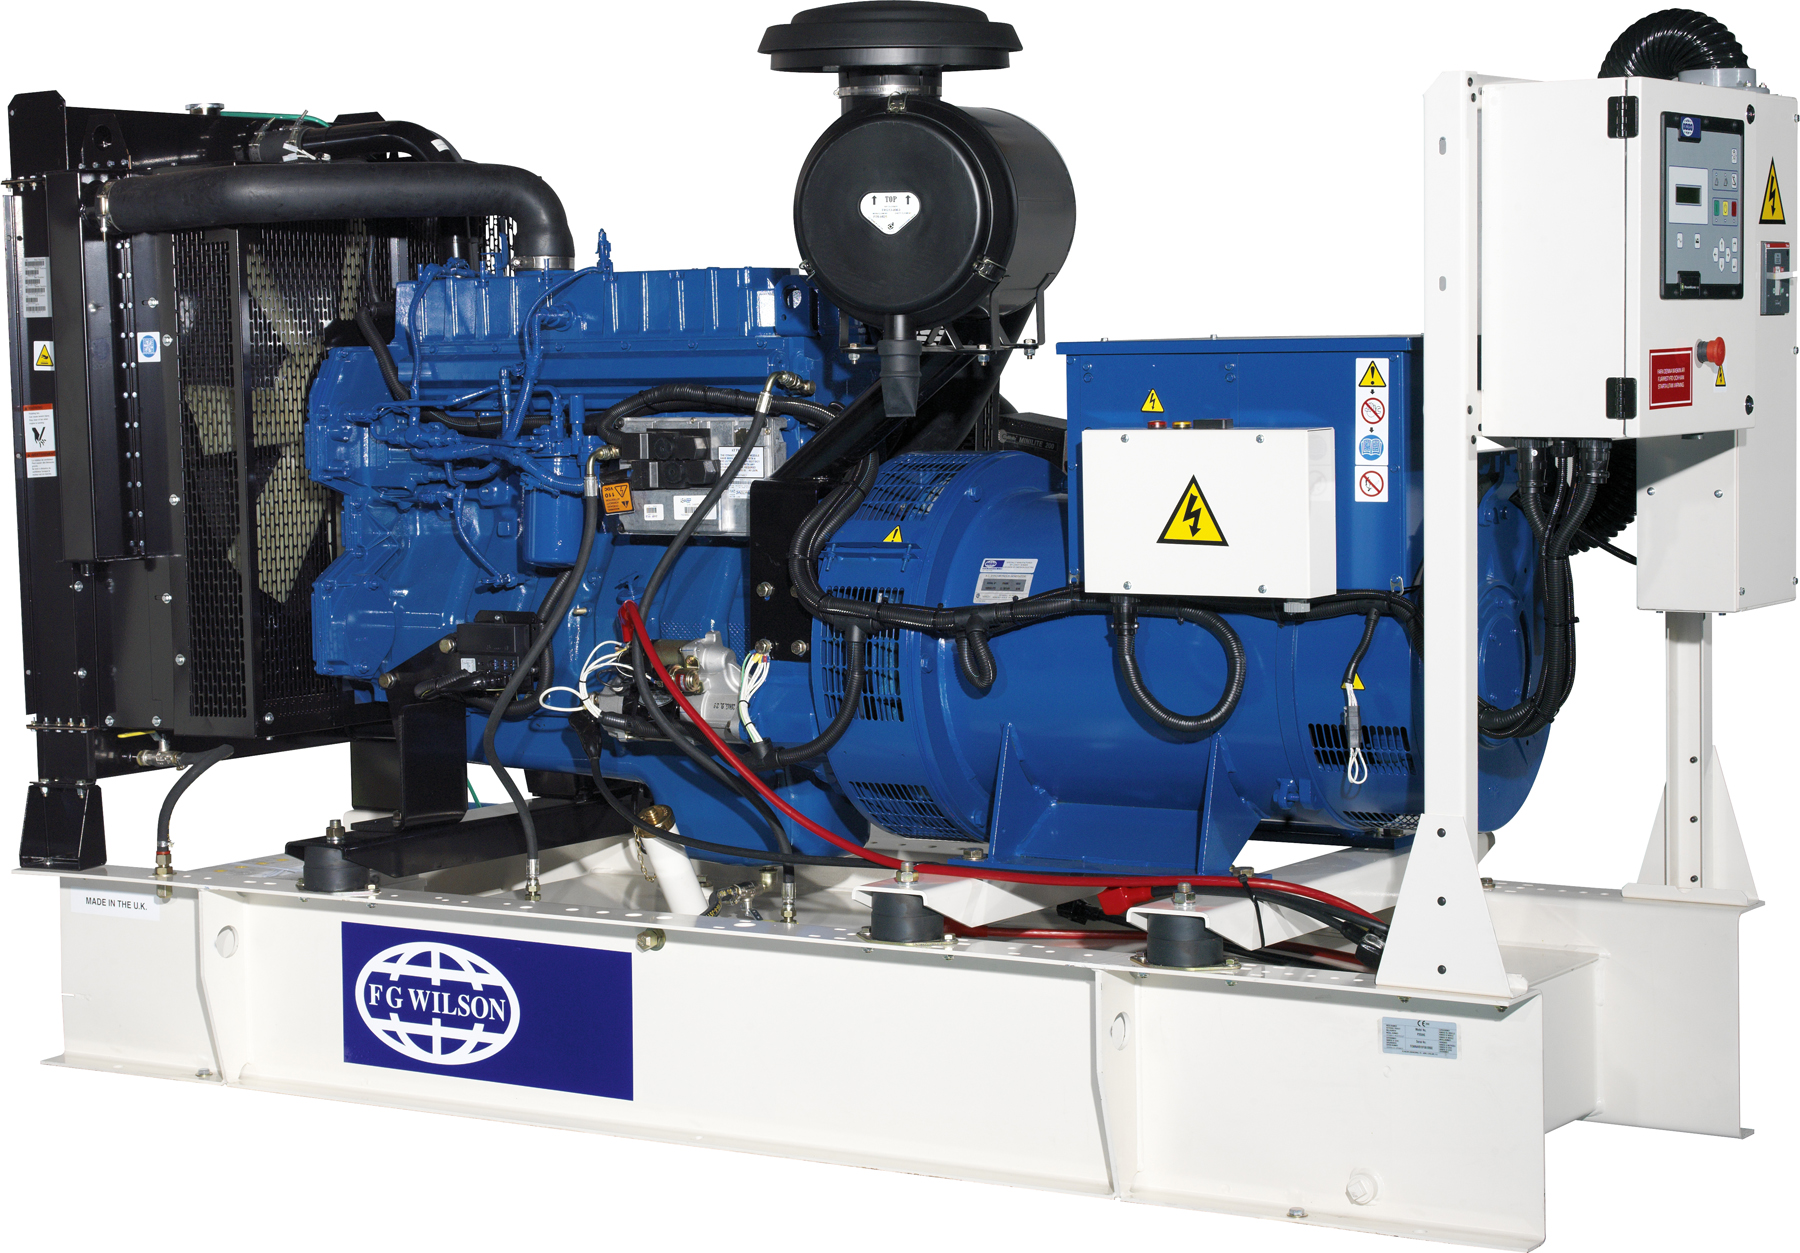 26 - 200 kVA - Genpower Australia - Design and Manufacture Diesel Power  Generators (FG Wilson), Enclosures and Switchboards for Australian  industries.